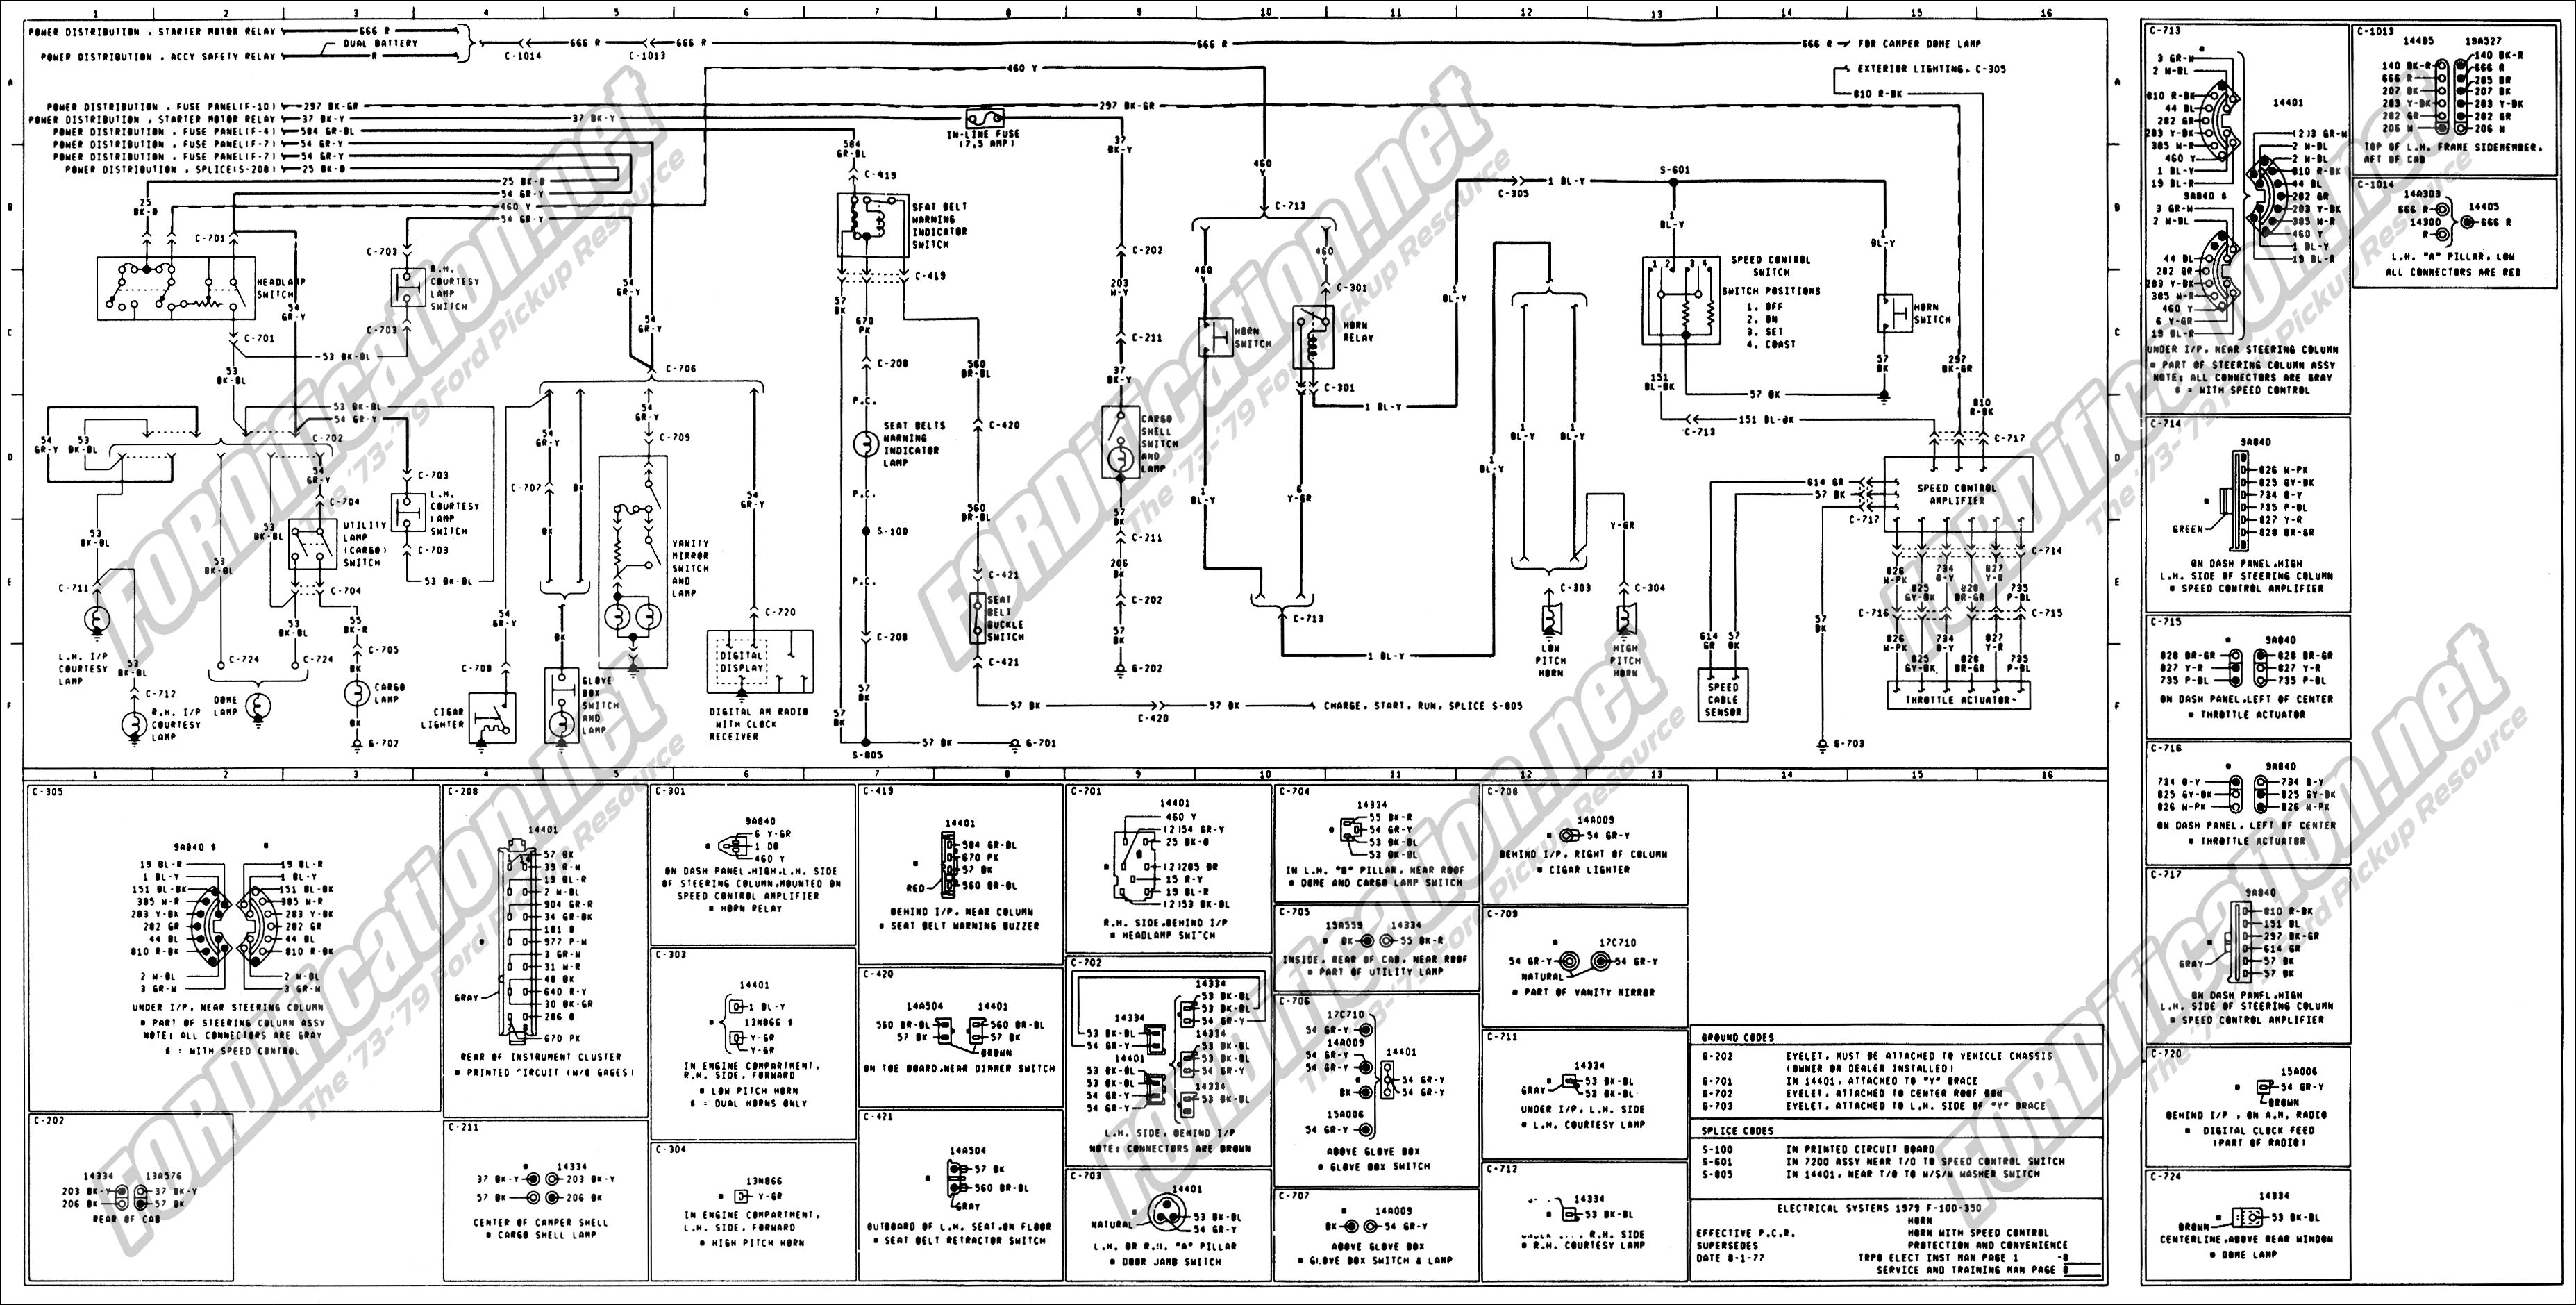 350 Starter Wiring Diagram Free Schematic furthermore 1eazu 1999 E450 Chassis Rv Need Wiring Diagram furthermore 0of72 Need Fuse Box Diagram Ford Explorer 1993 likewise Ford F 350 Transmission Cooler Line Diagrams in addition 45yfl Find Free Online Ford Explorer Electrical Wiring Diagram. on ford f250 wiring diagram online